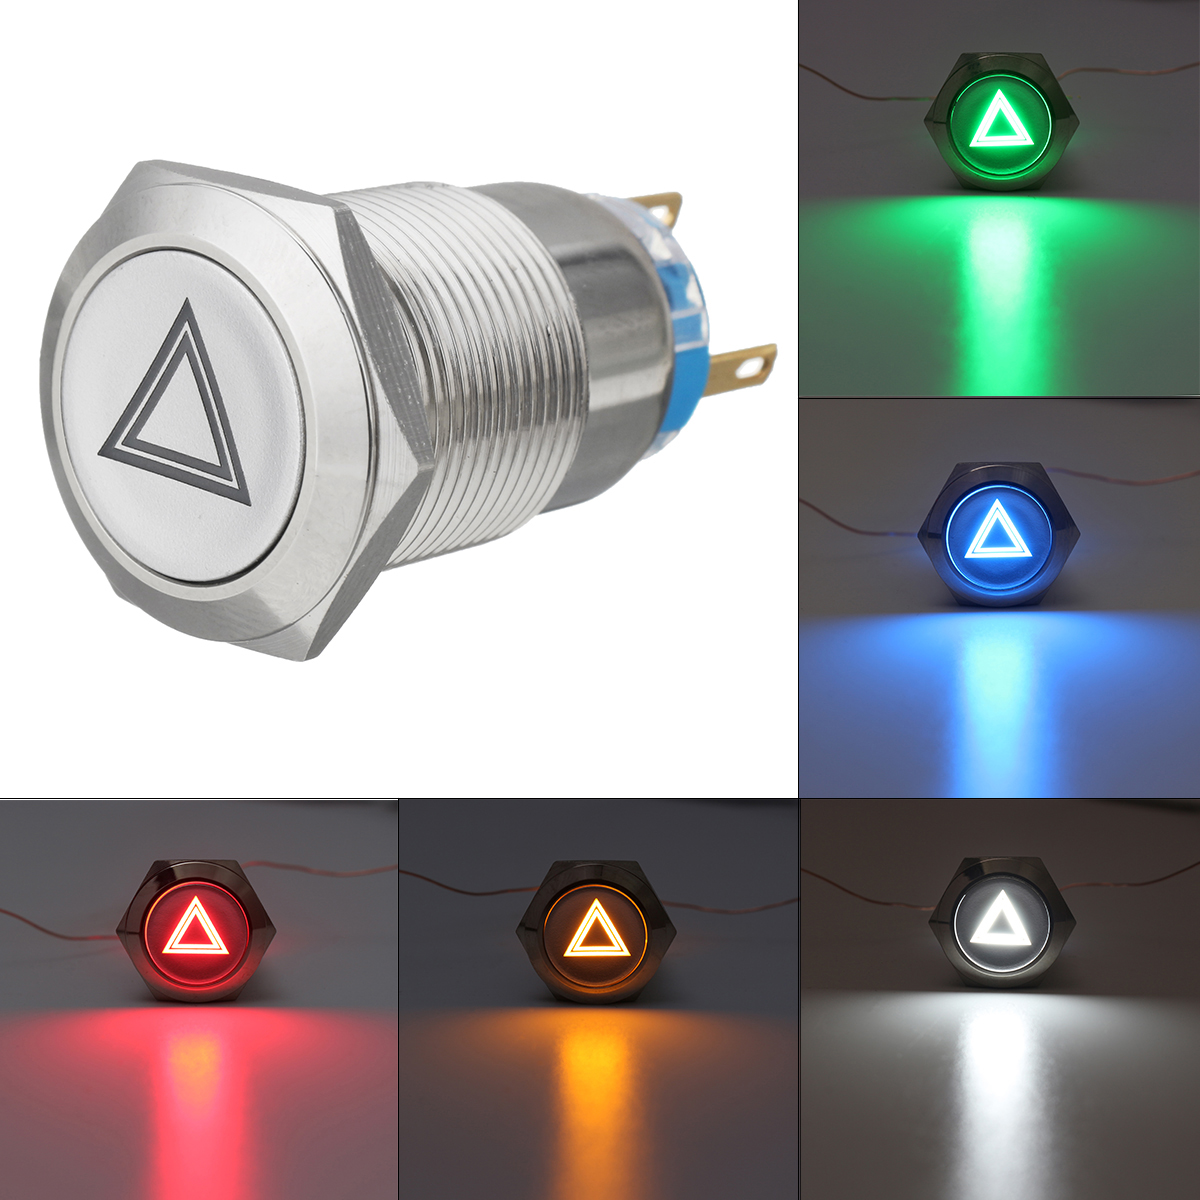 19mm 12v Ip65 Push Button Switch Dome Light Led On Off Switches